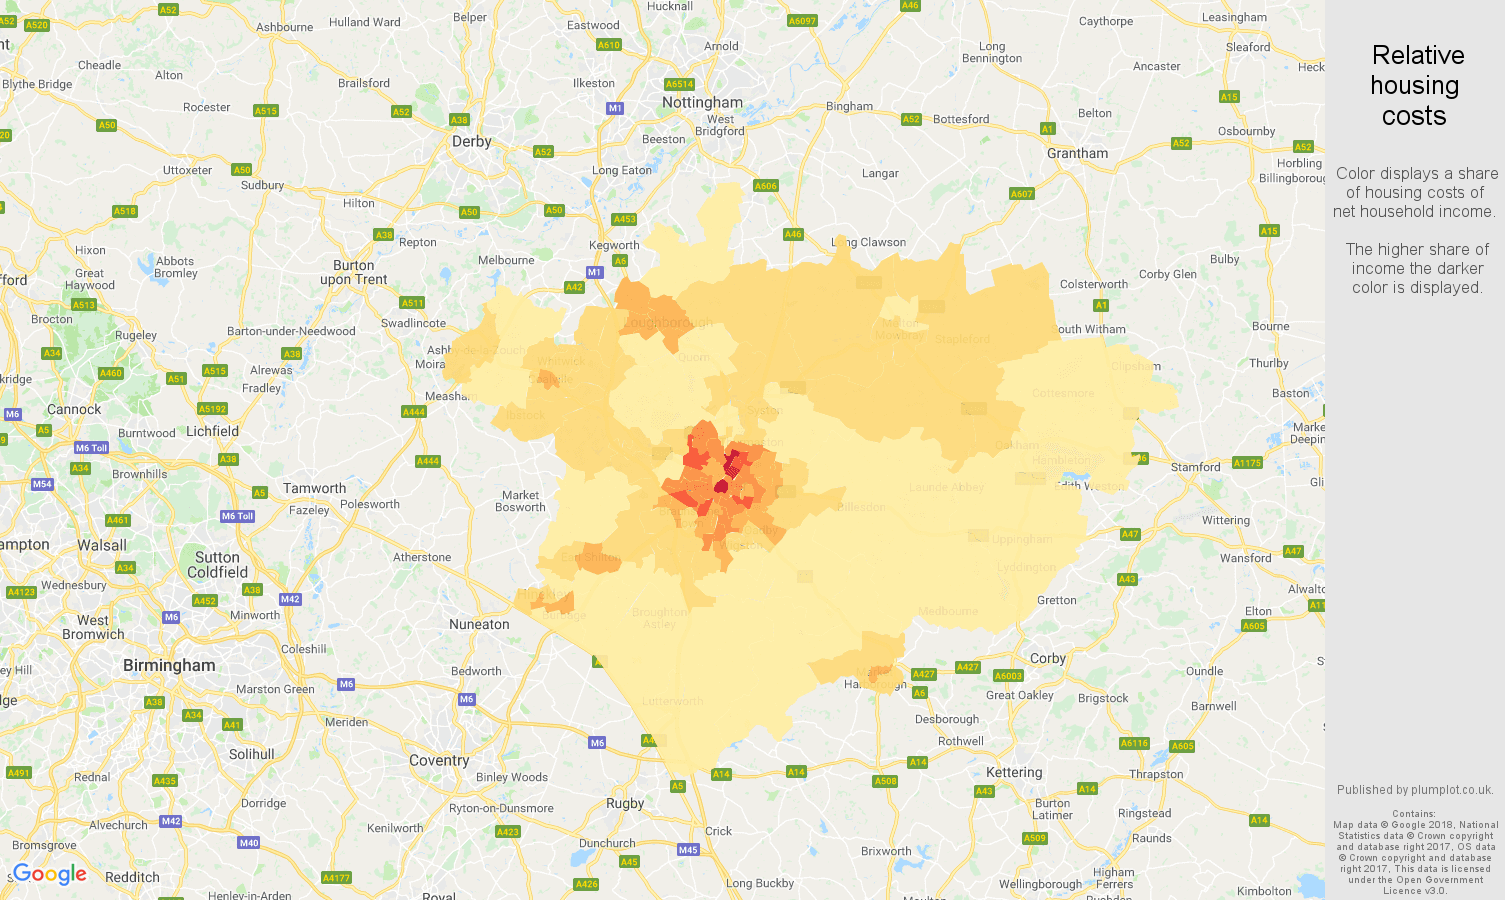 Leicester relative housing costs map